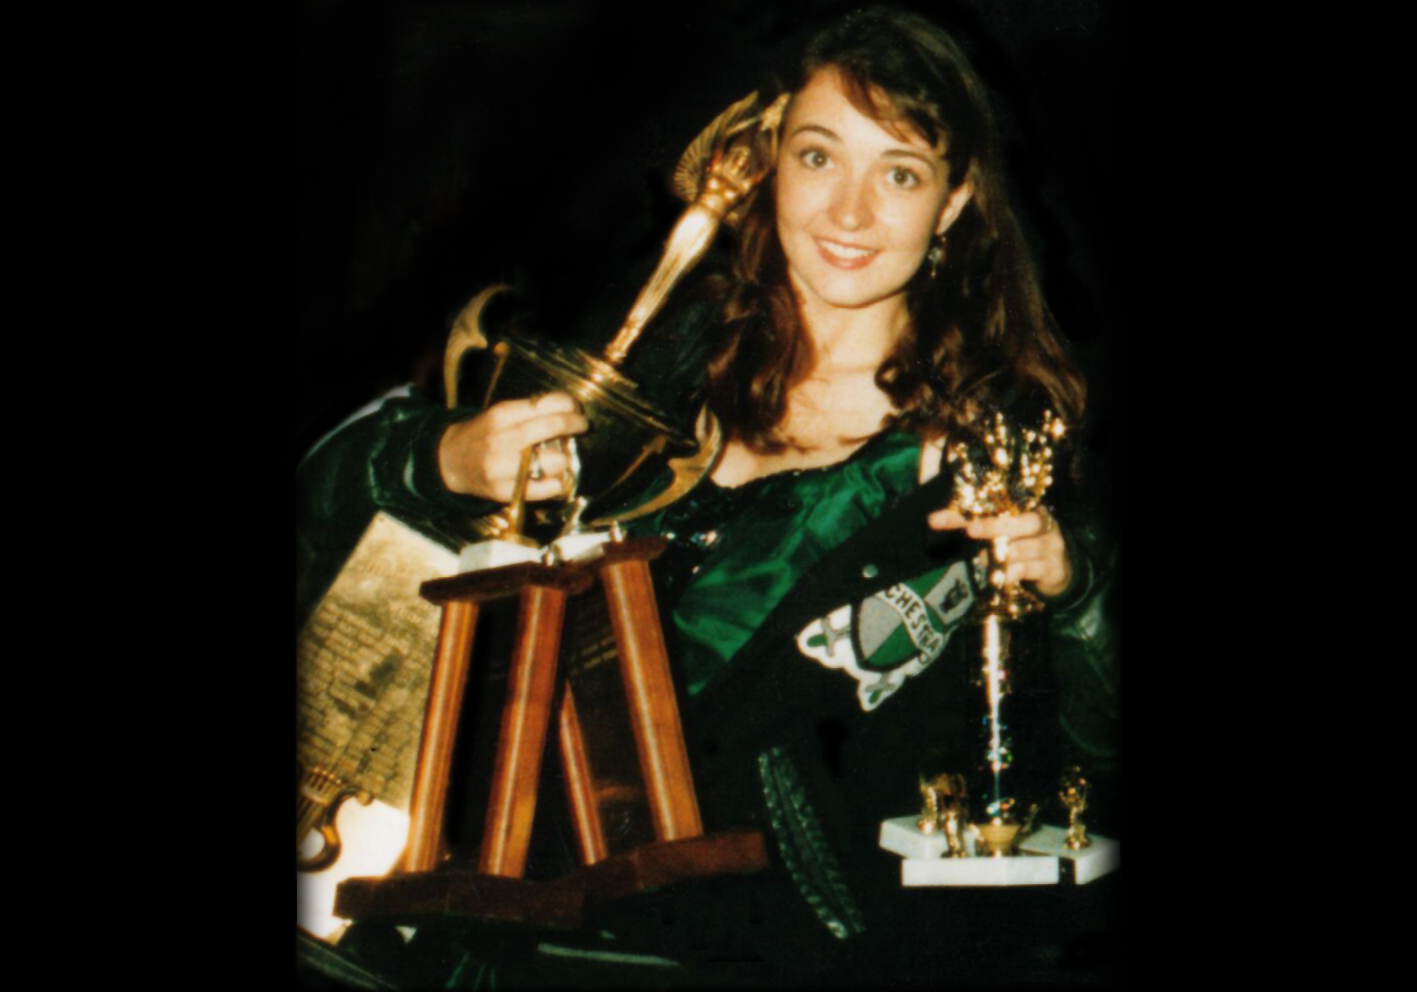 Rhiannon, in a green formal dress and letterman's jacket, smiling and balancing a stack of six brass trophies